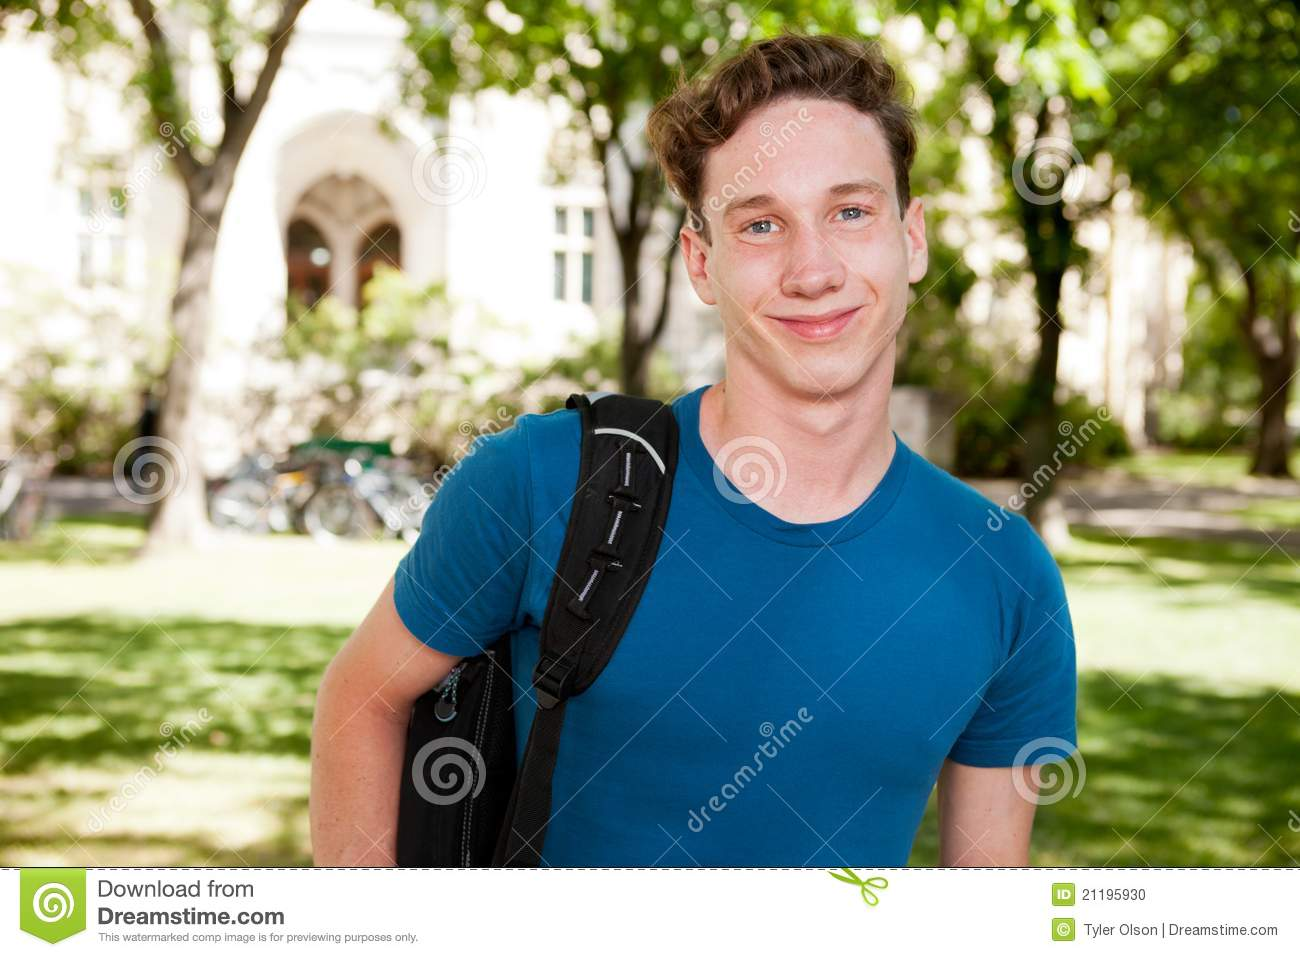 Male Student on Campus